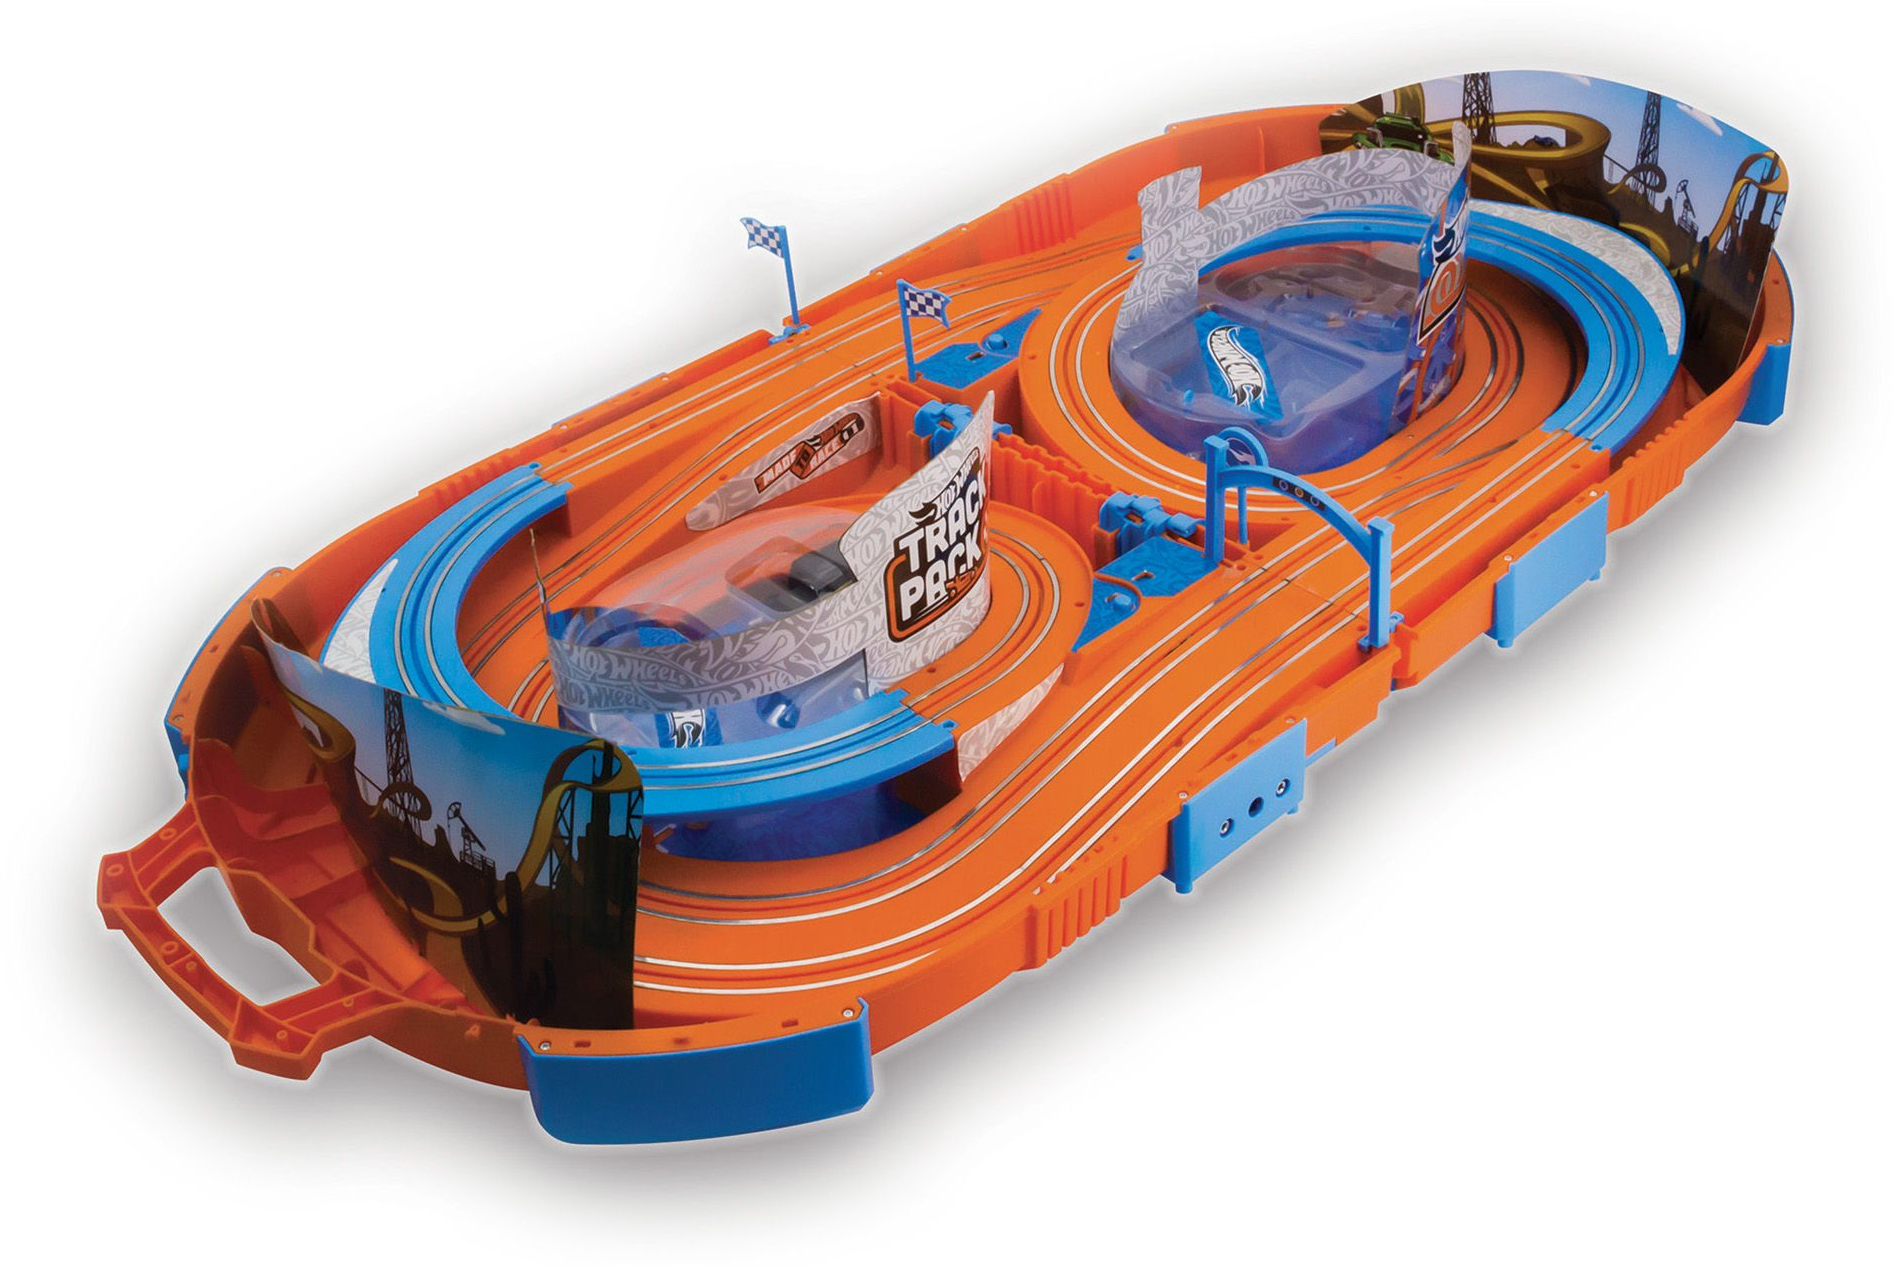 Details About Kidztech Hot Wheels Electric 9 1 Foot Race Track Playset